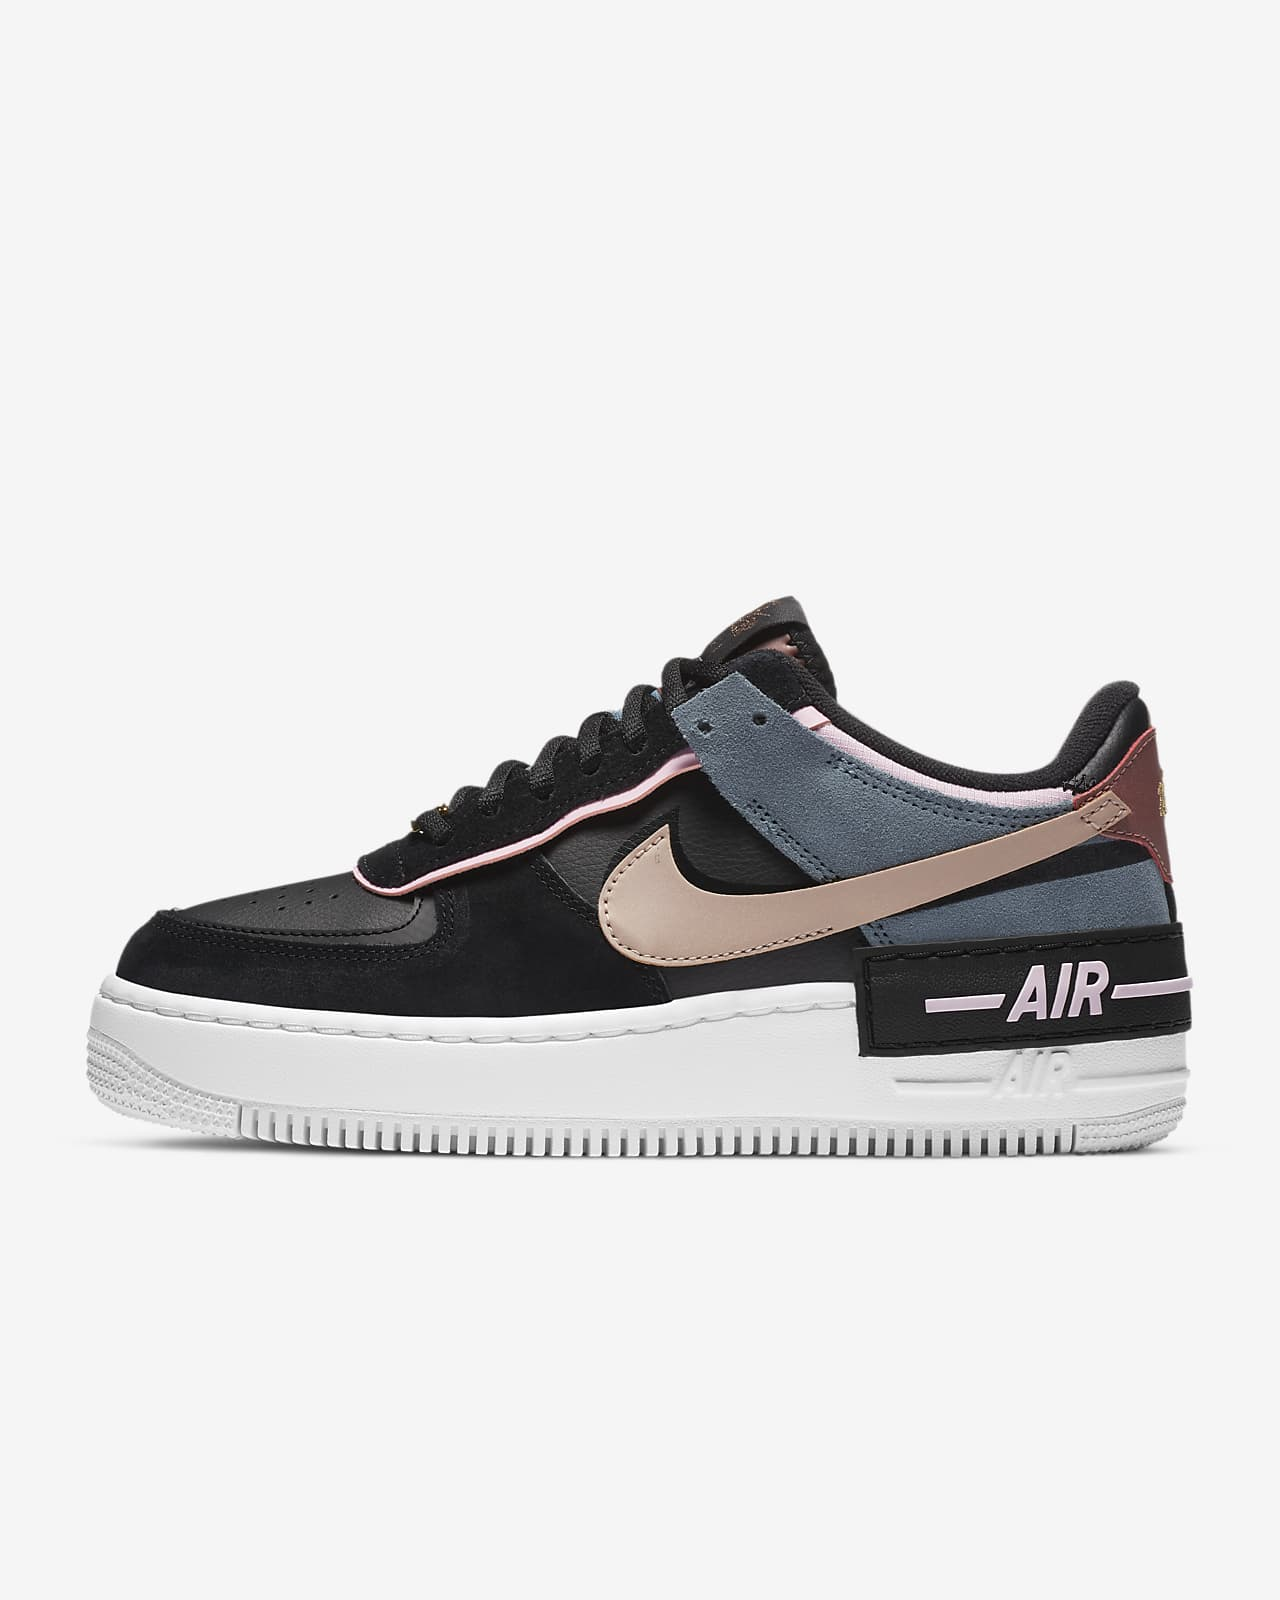 Nike Air Force 1 Shadow Women S Shoe Nike Id Nike wmns af1 shadow black light arctic pink air force 1 womens shoes cu5315 001top rated seller. nike air force 1 shadow women s shoe